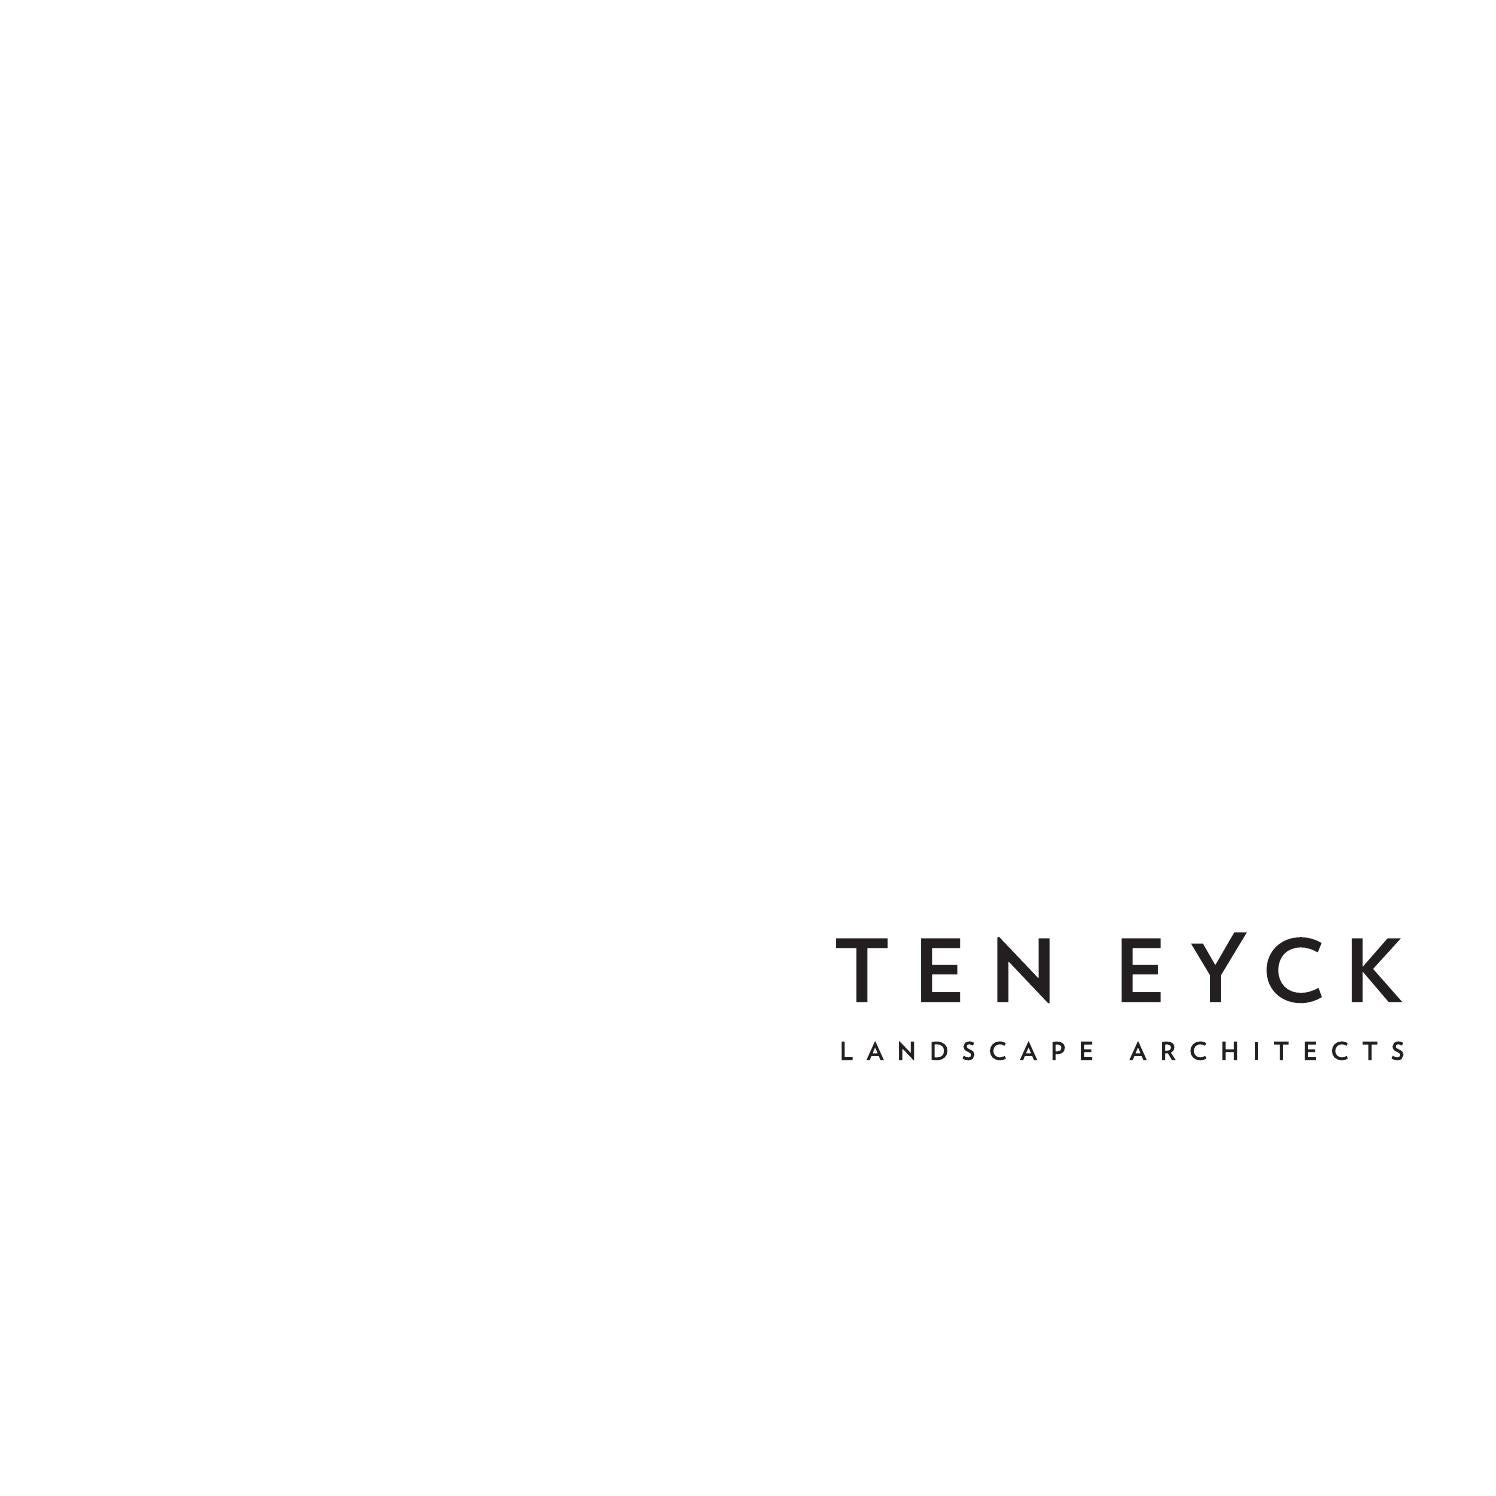 Ten eyck landscape architects inc june 2015 by ten eyck for Ten eyck landscape architects